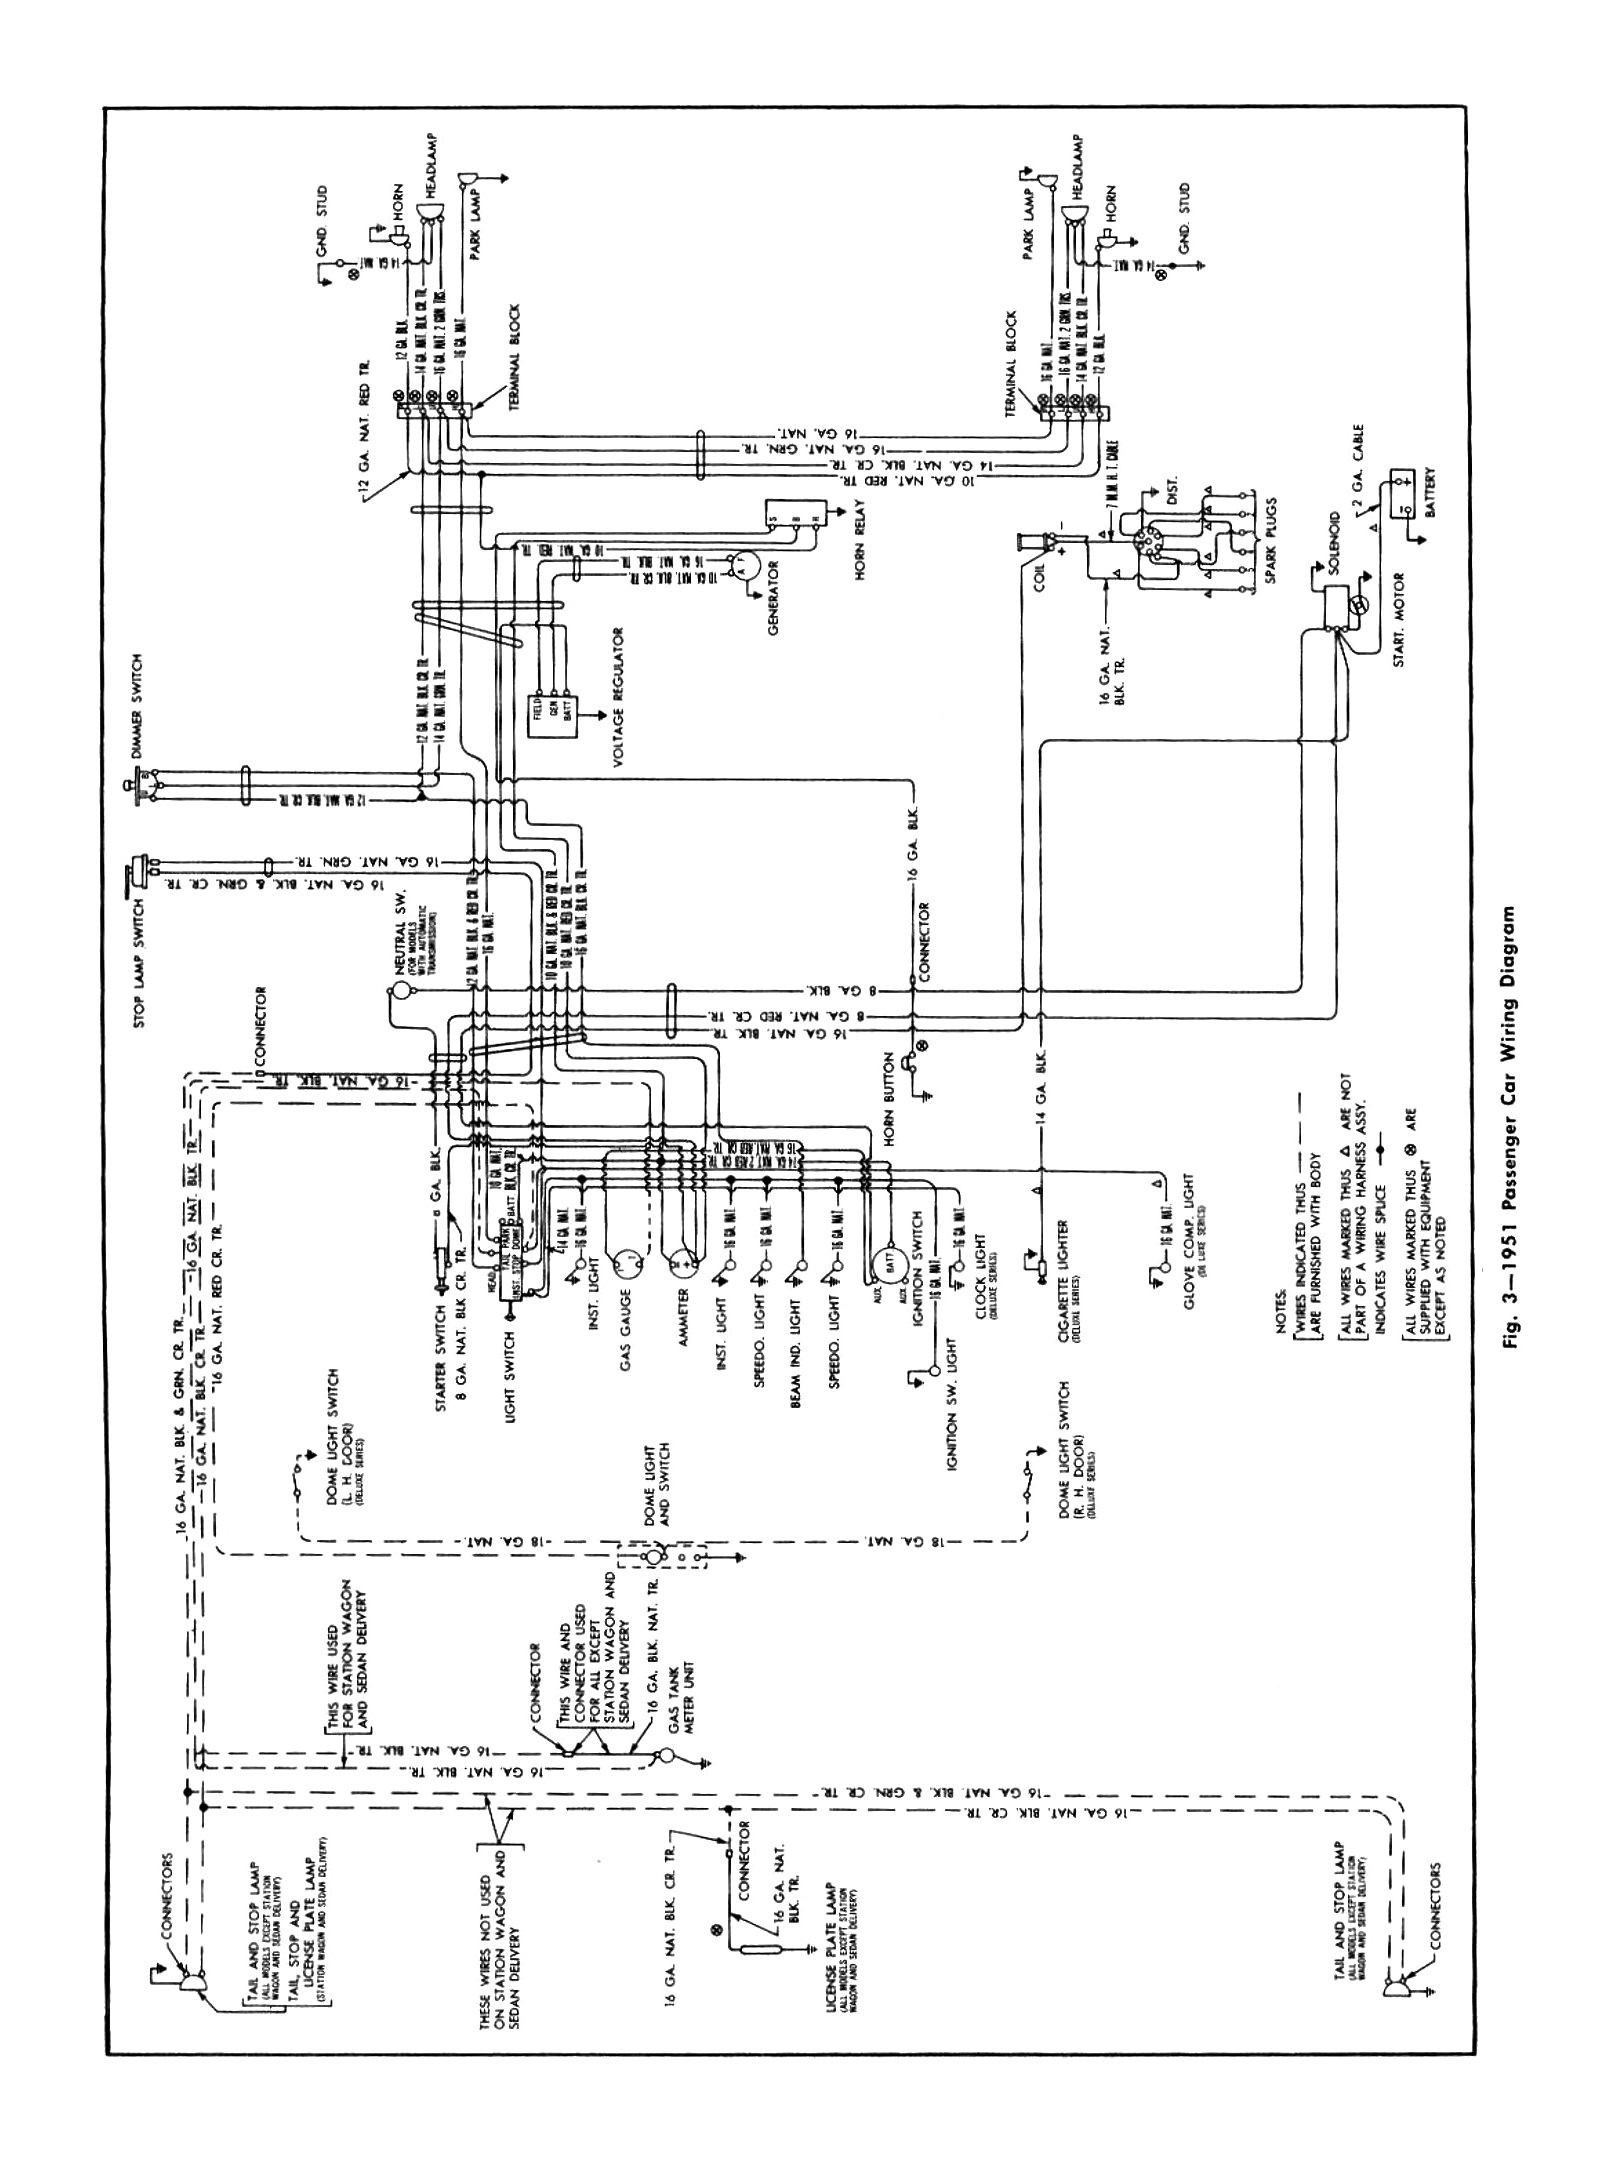 Wireing Diagram for 1988 Club Car Chevy Wiring Diagrams Of Wireing Diagram for 1988 Club Car